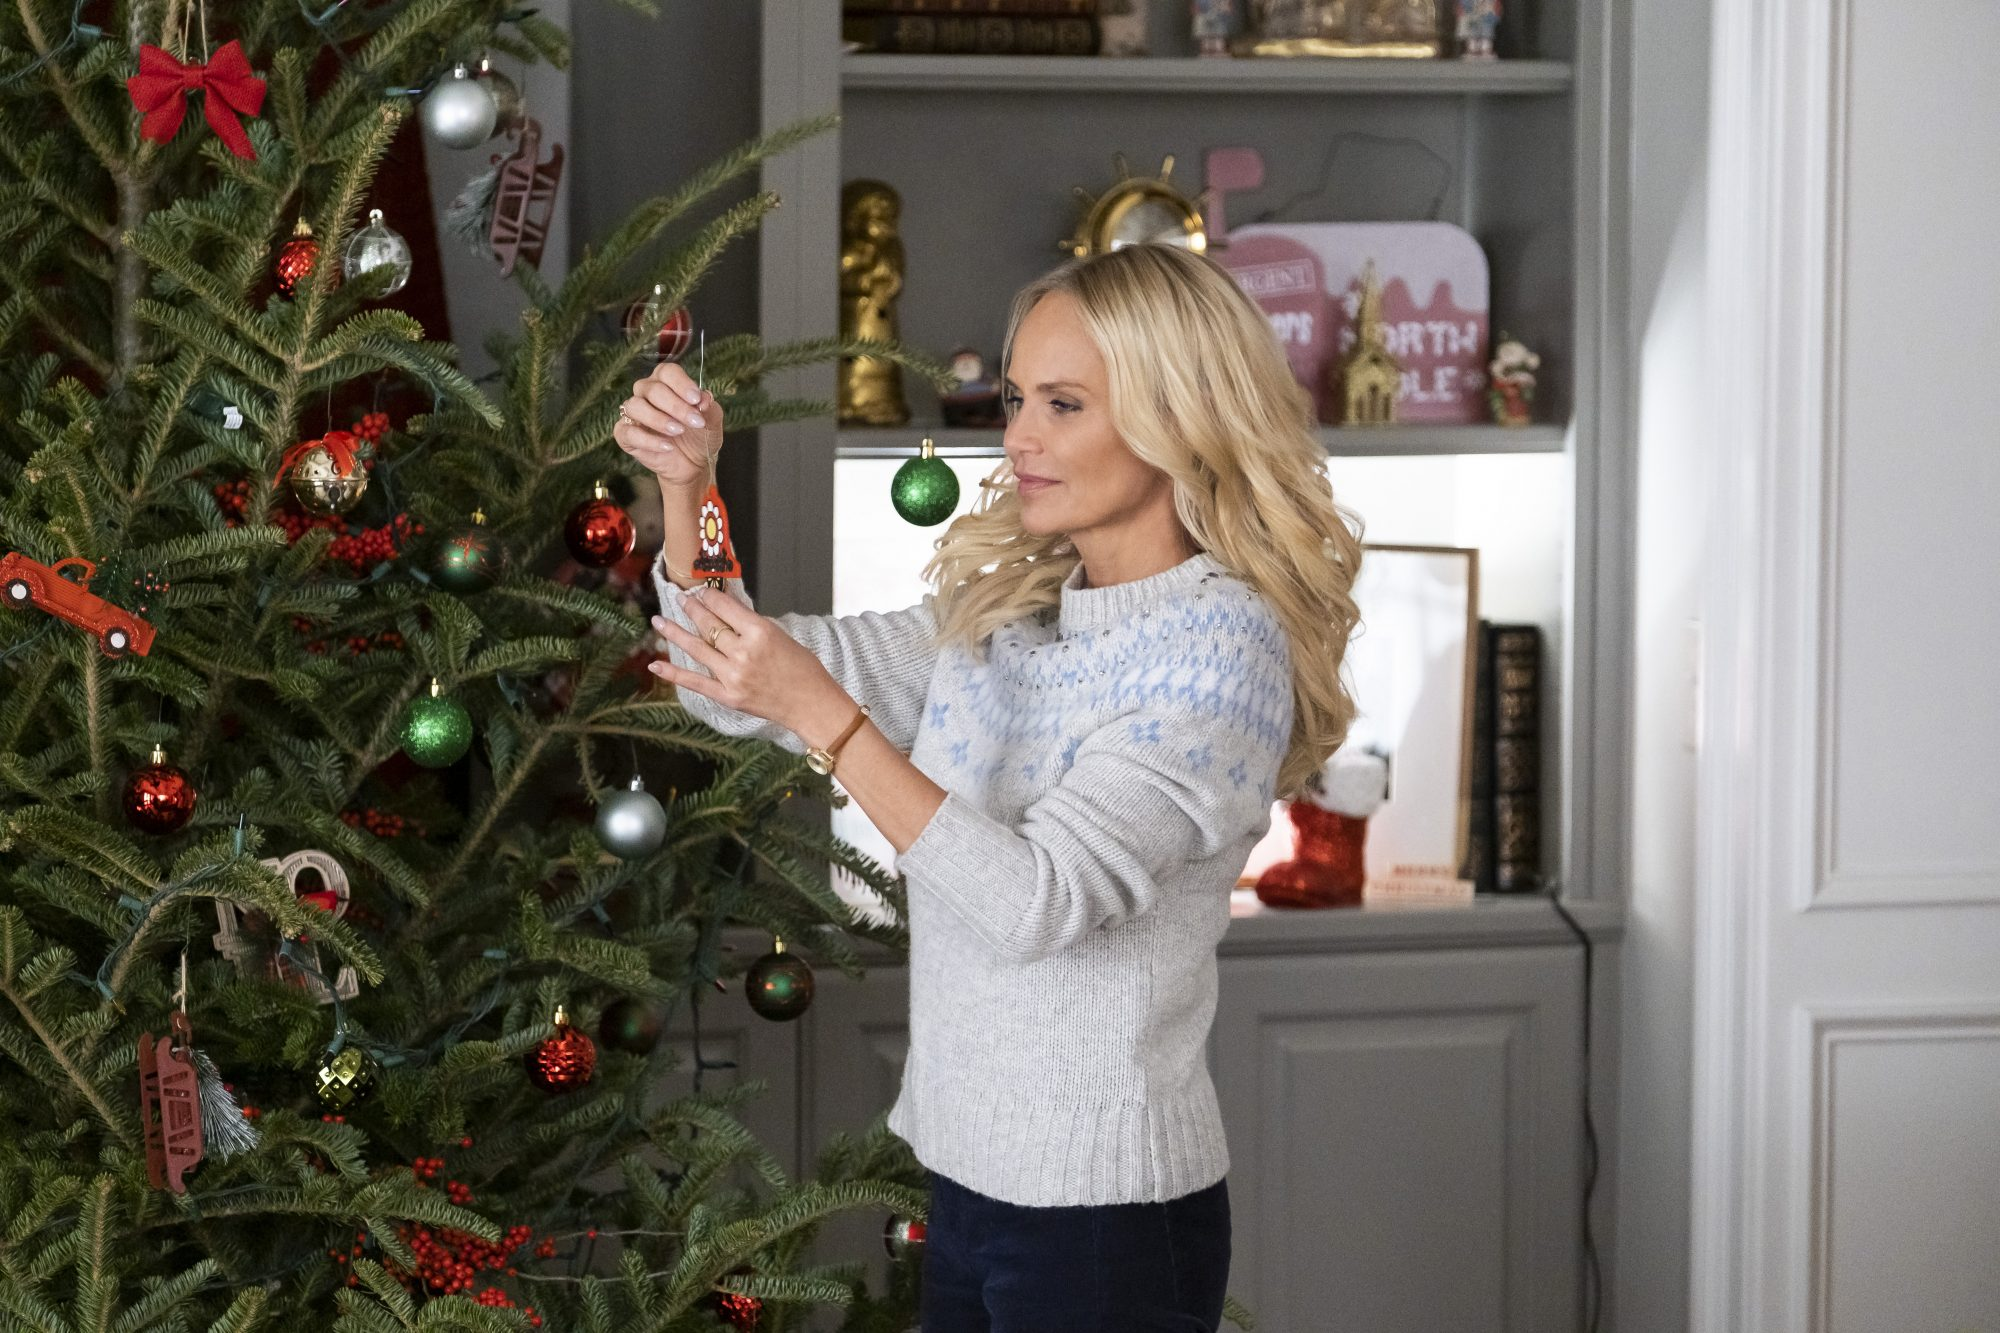 Alert: The Entire Schedule of New Hallmark Christmas Movies is Out Today